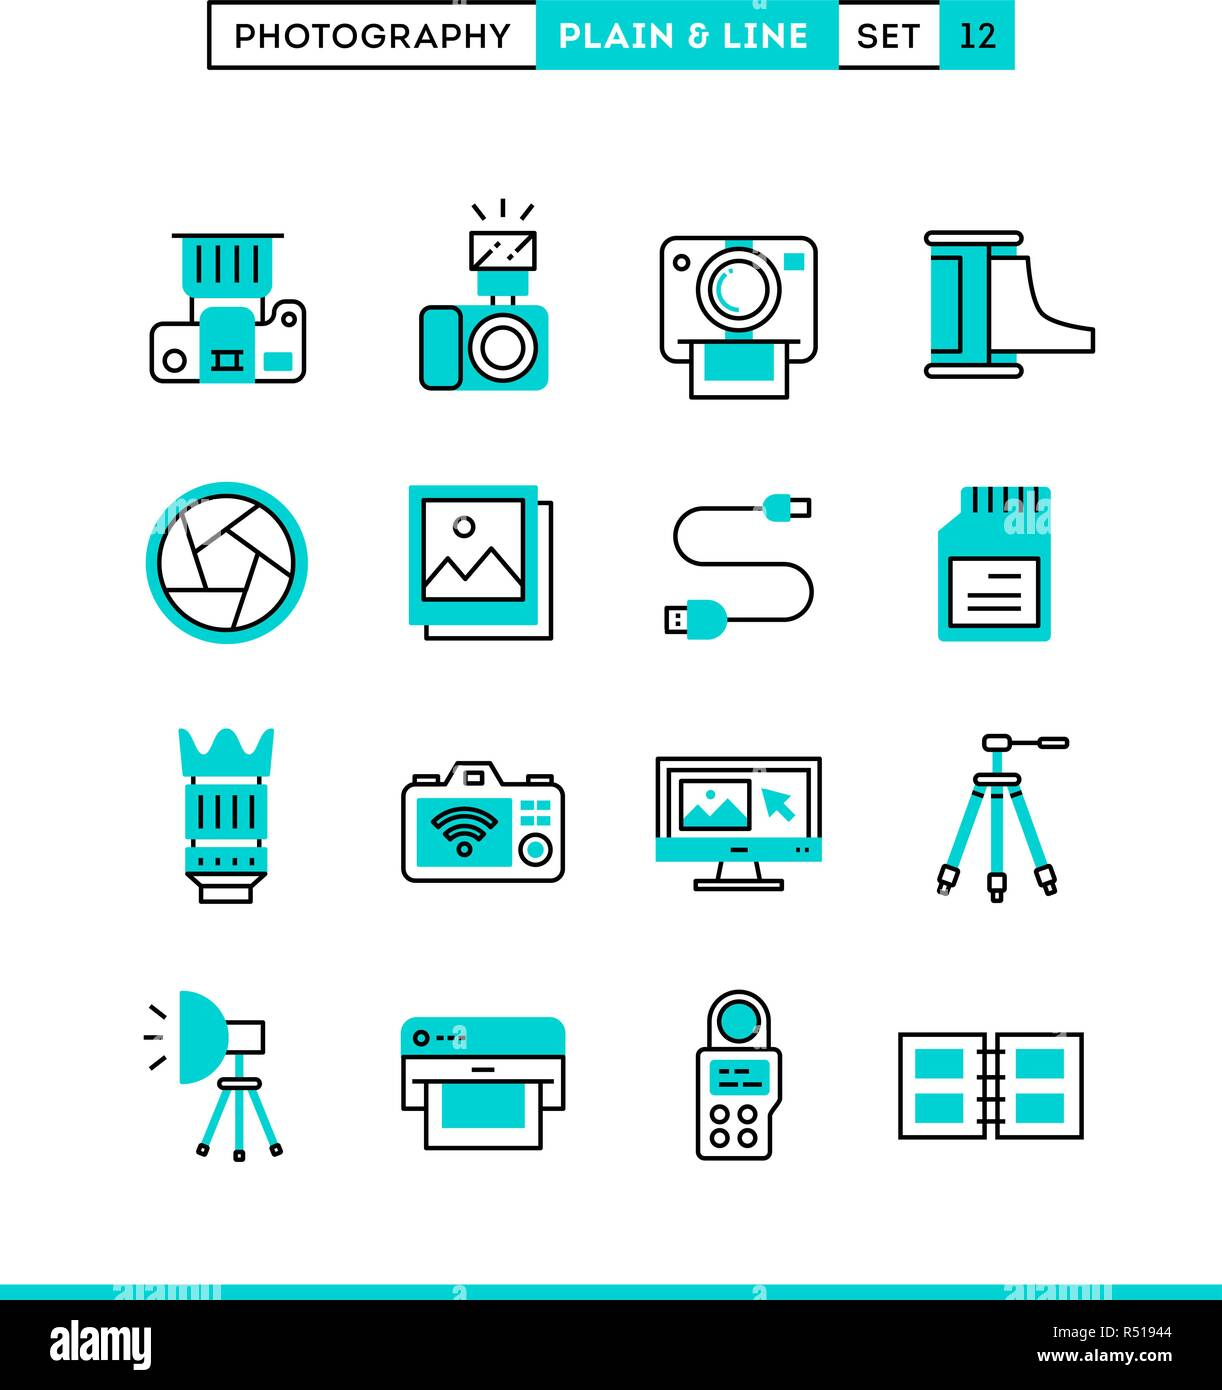 Photography, equipment, post-production, printing and more. Plain and line icons set, flat design, vector illustration Stock Vector